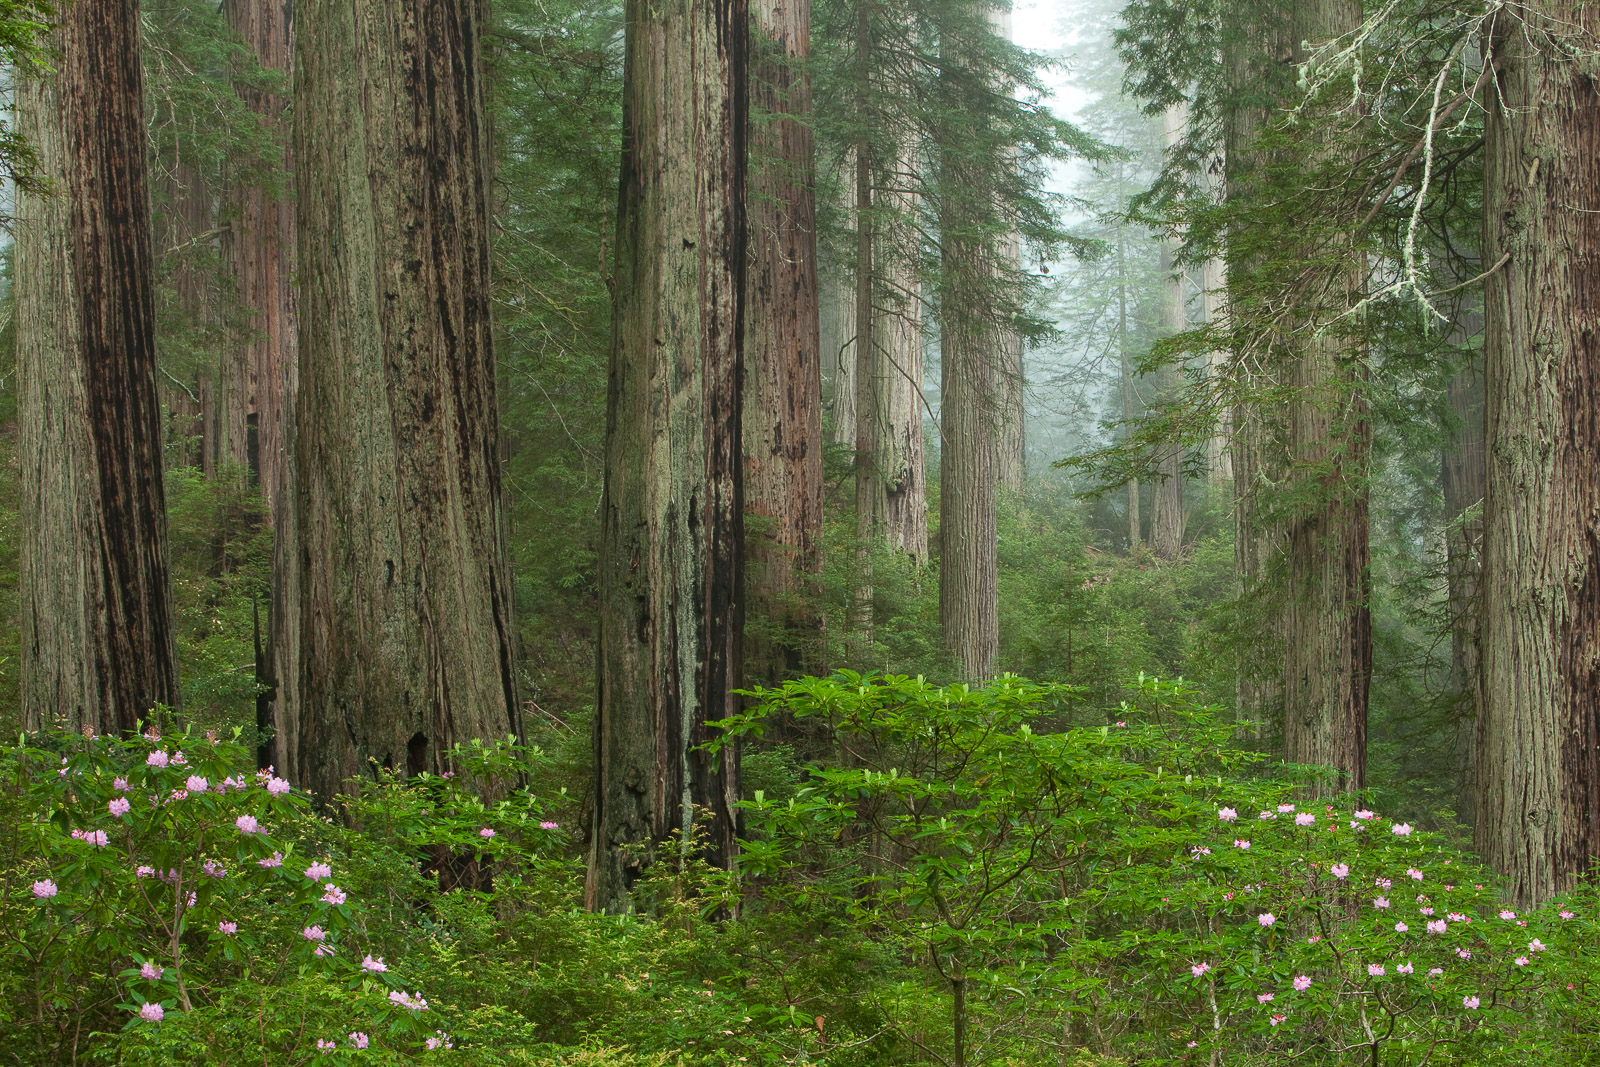 The Forest,Del Norte Coast Redwoods State Park, California,Forest,Trails,Redwood,Blossoms,Green, photo